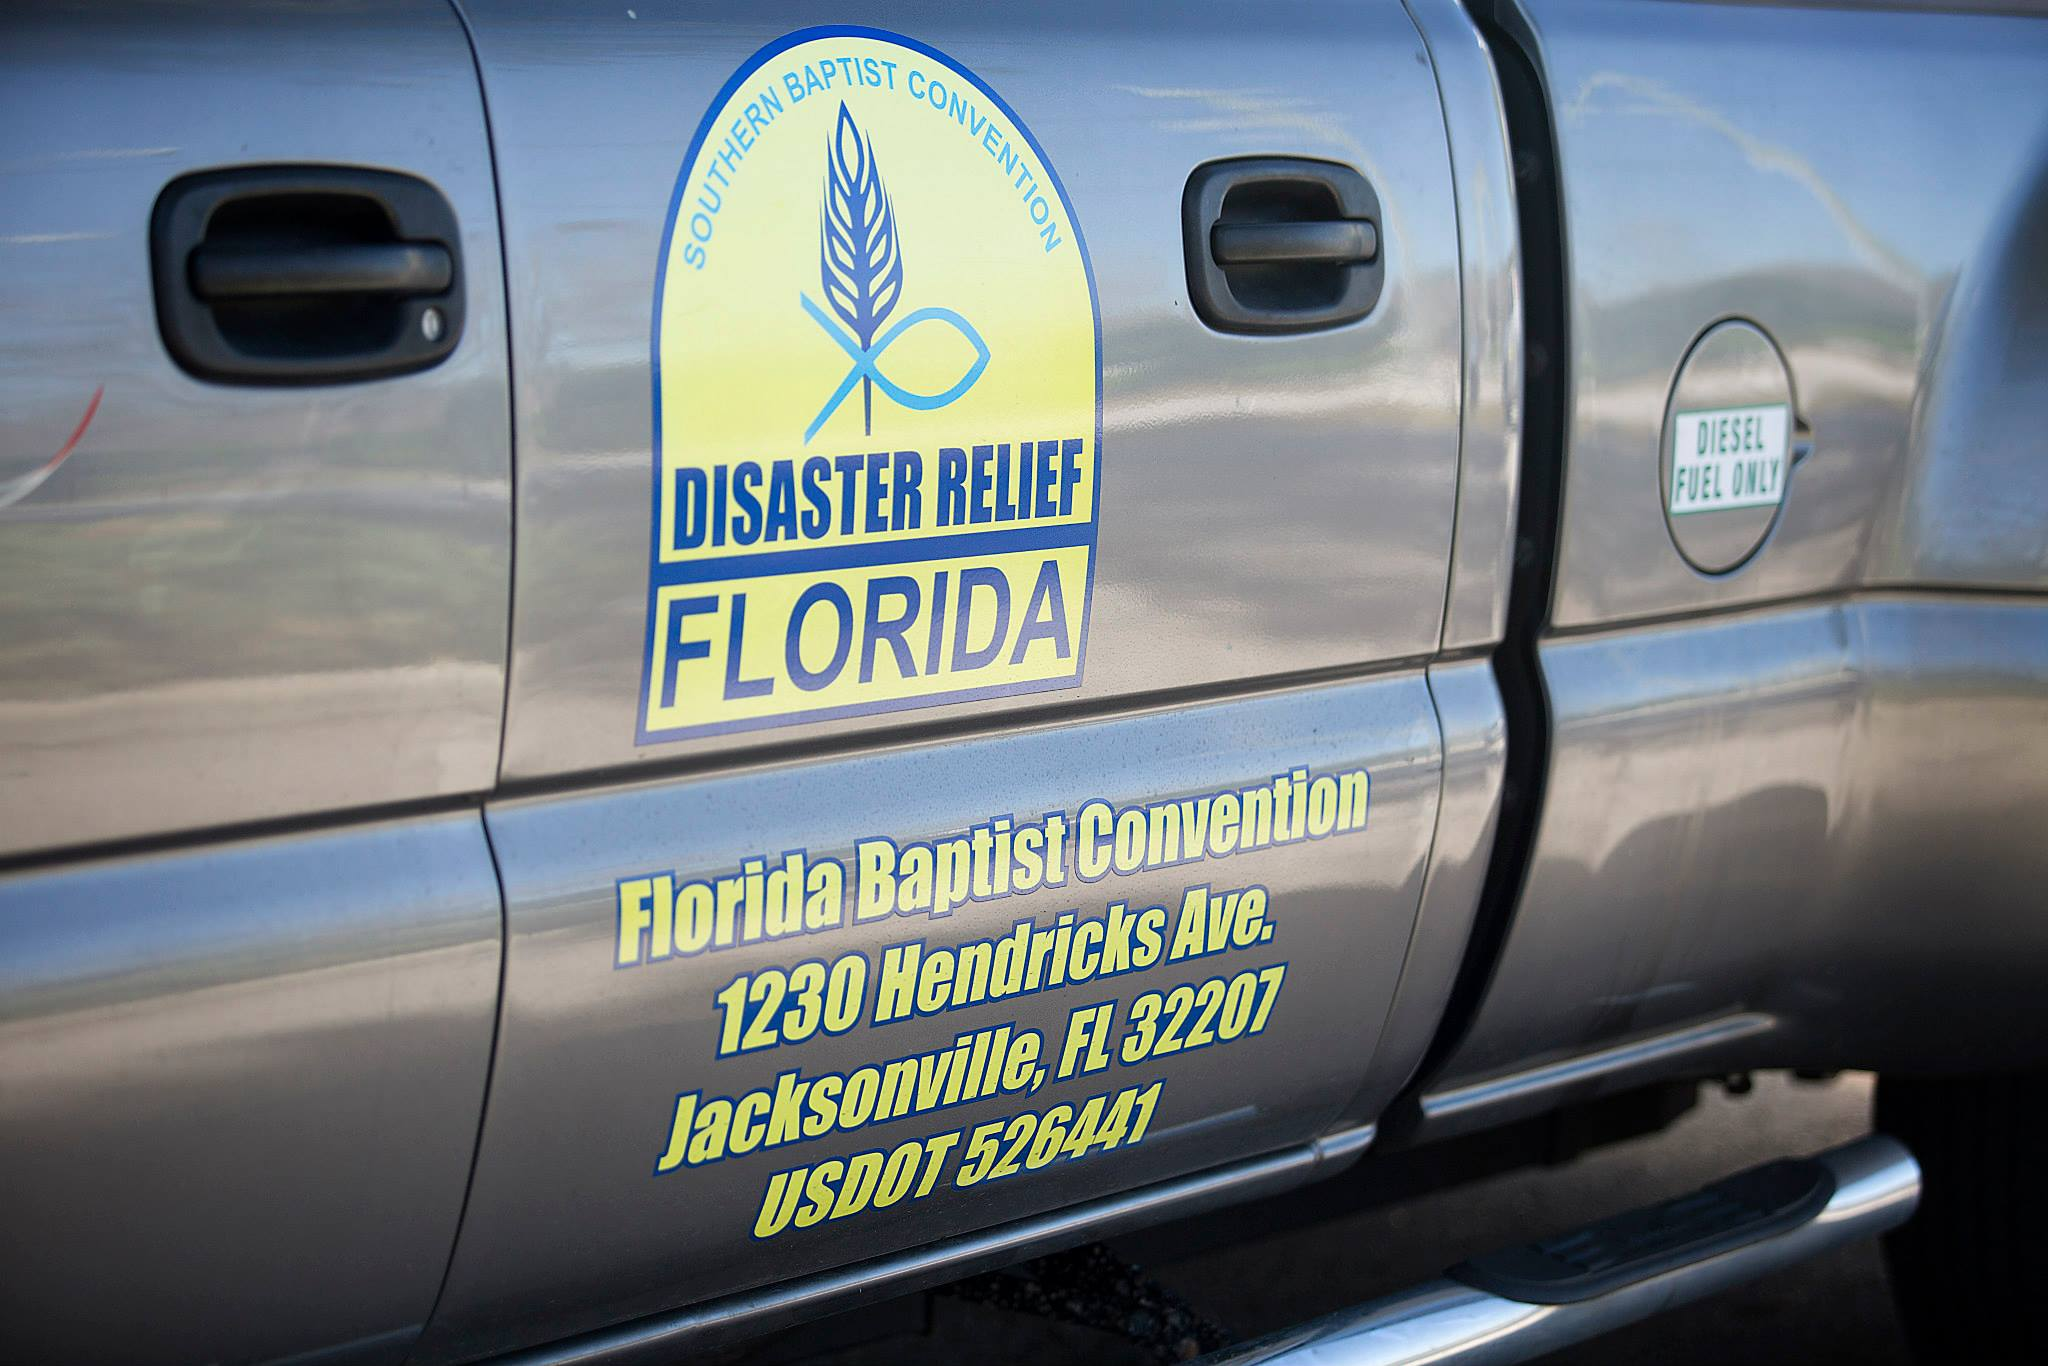 Disaster Relief Ministry - Florida Baptist Convention giving aid to all people in time of crisis